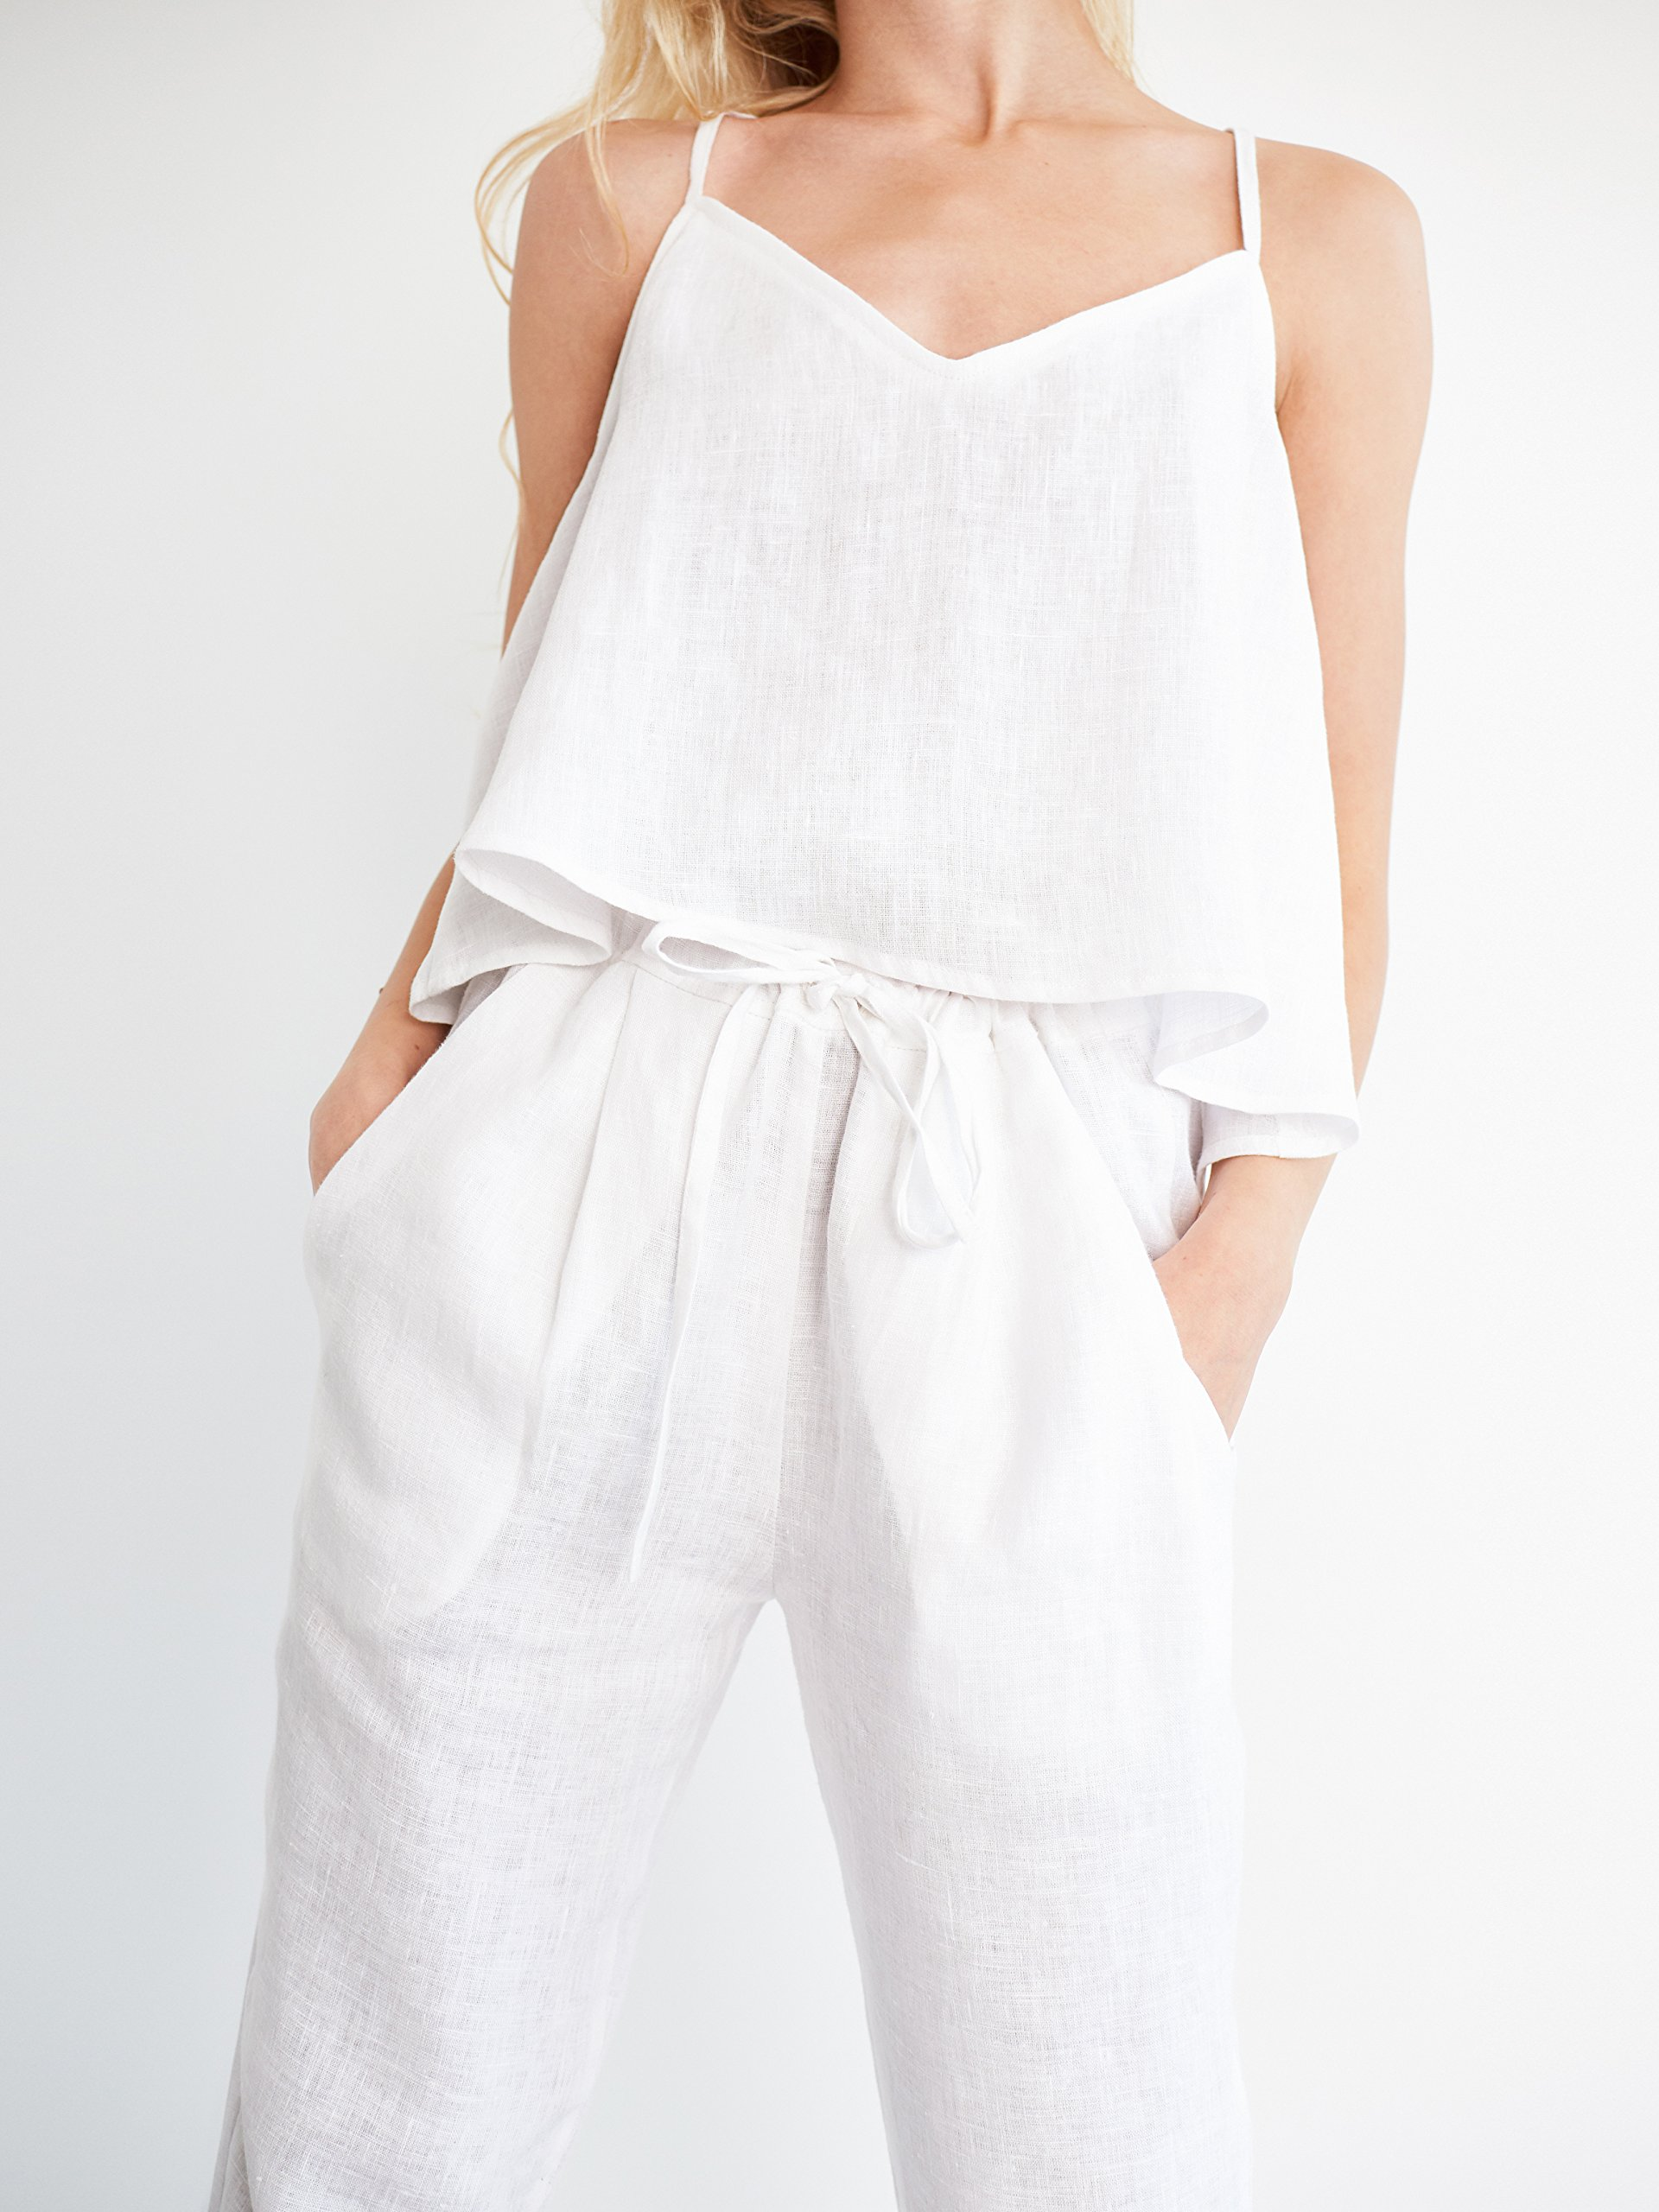 SAVANNAH Cropped Linen Pants in White Drawstring Trousers Relaxed Loose Fit Women Ladies